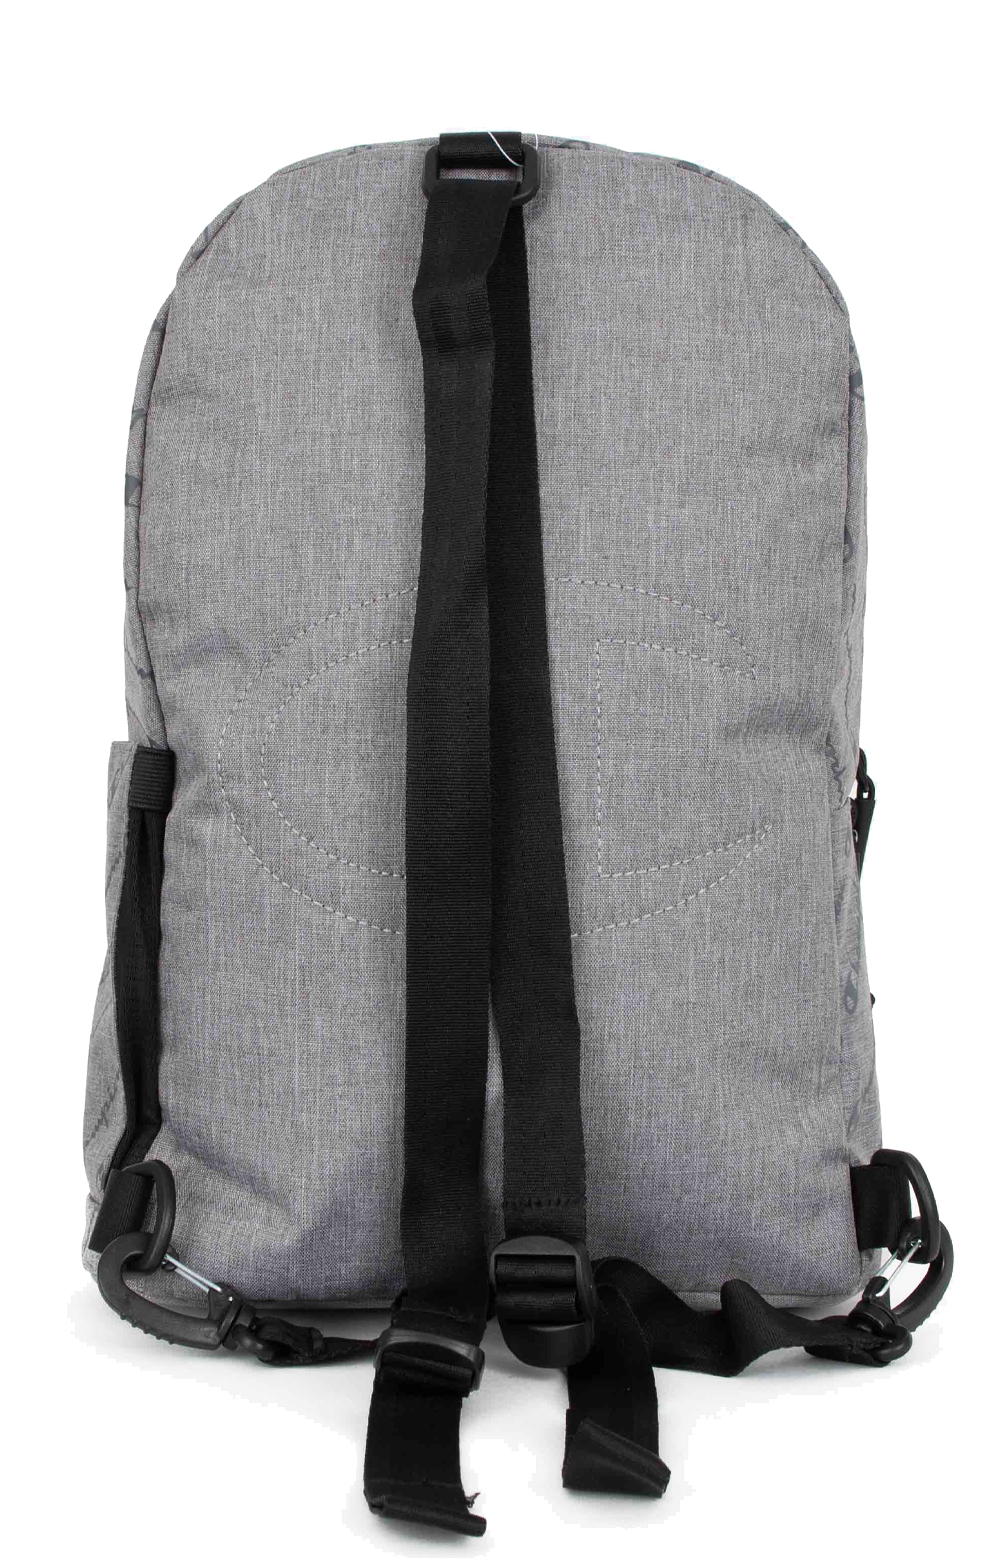 ded5135ce110 Supercize Mini Crossover Backpack - Grey Grey. Thumbnail 1 Thumbnail 1  Thumbnail 1